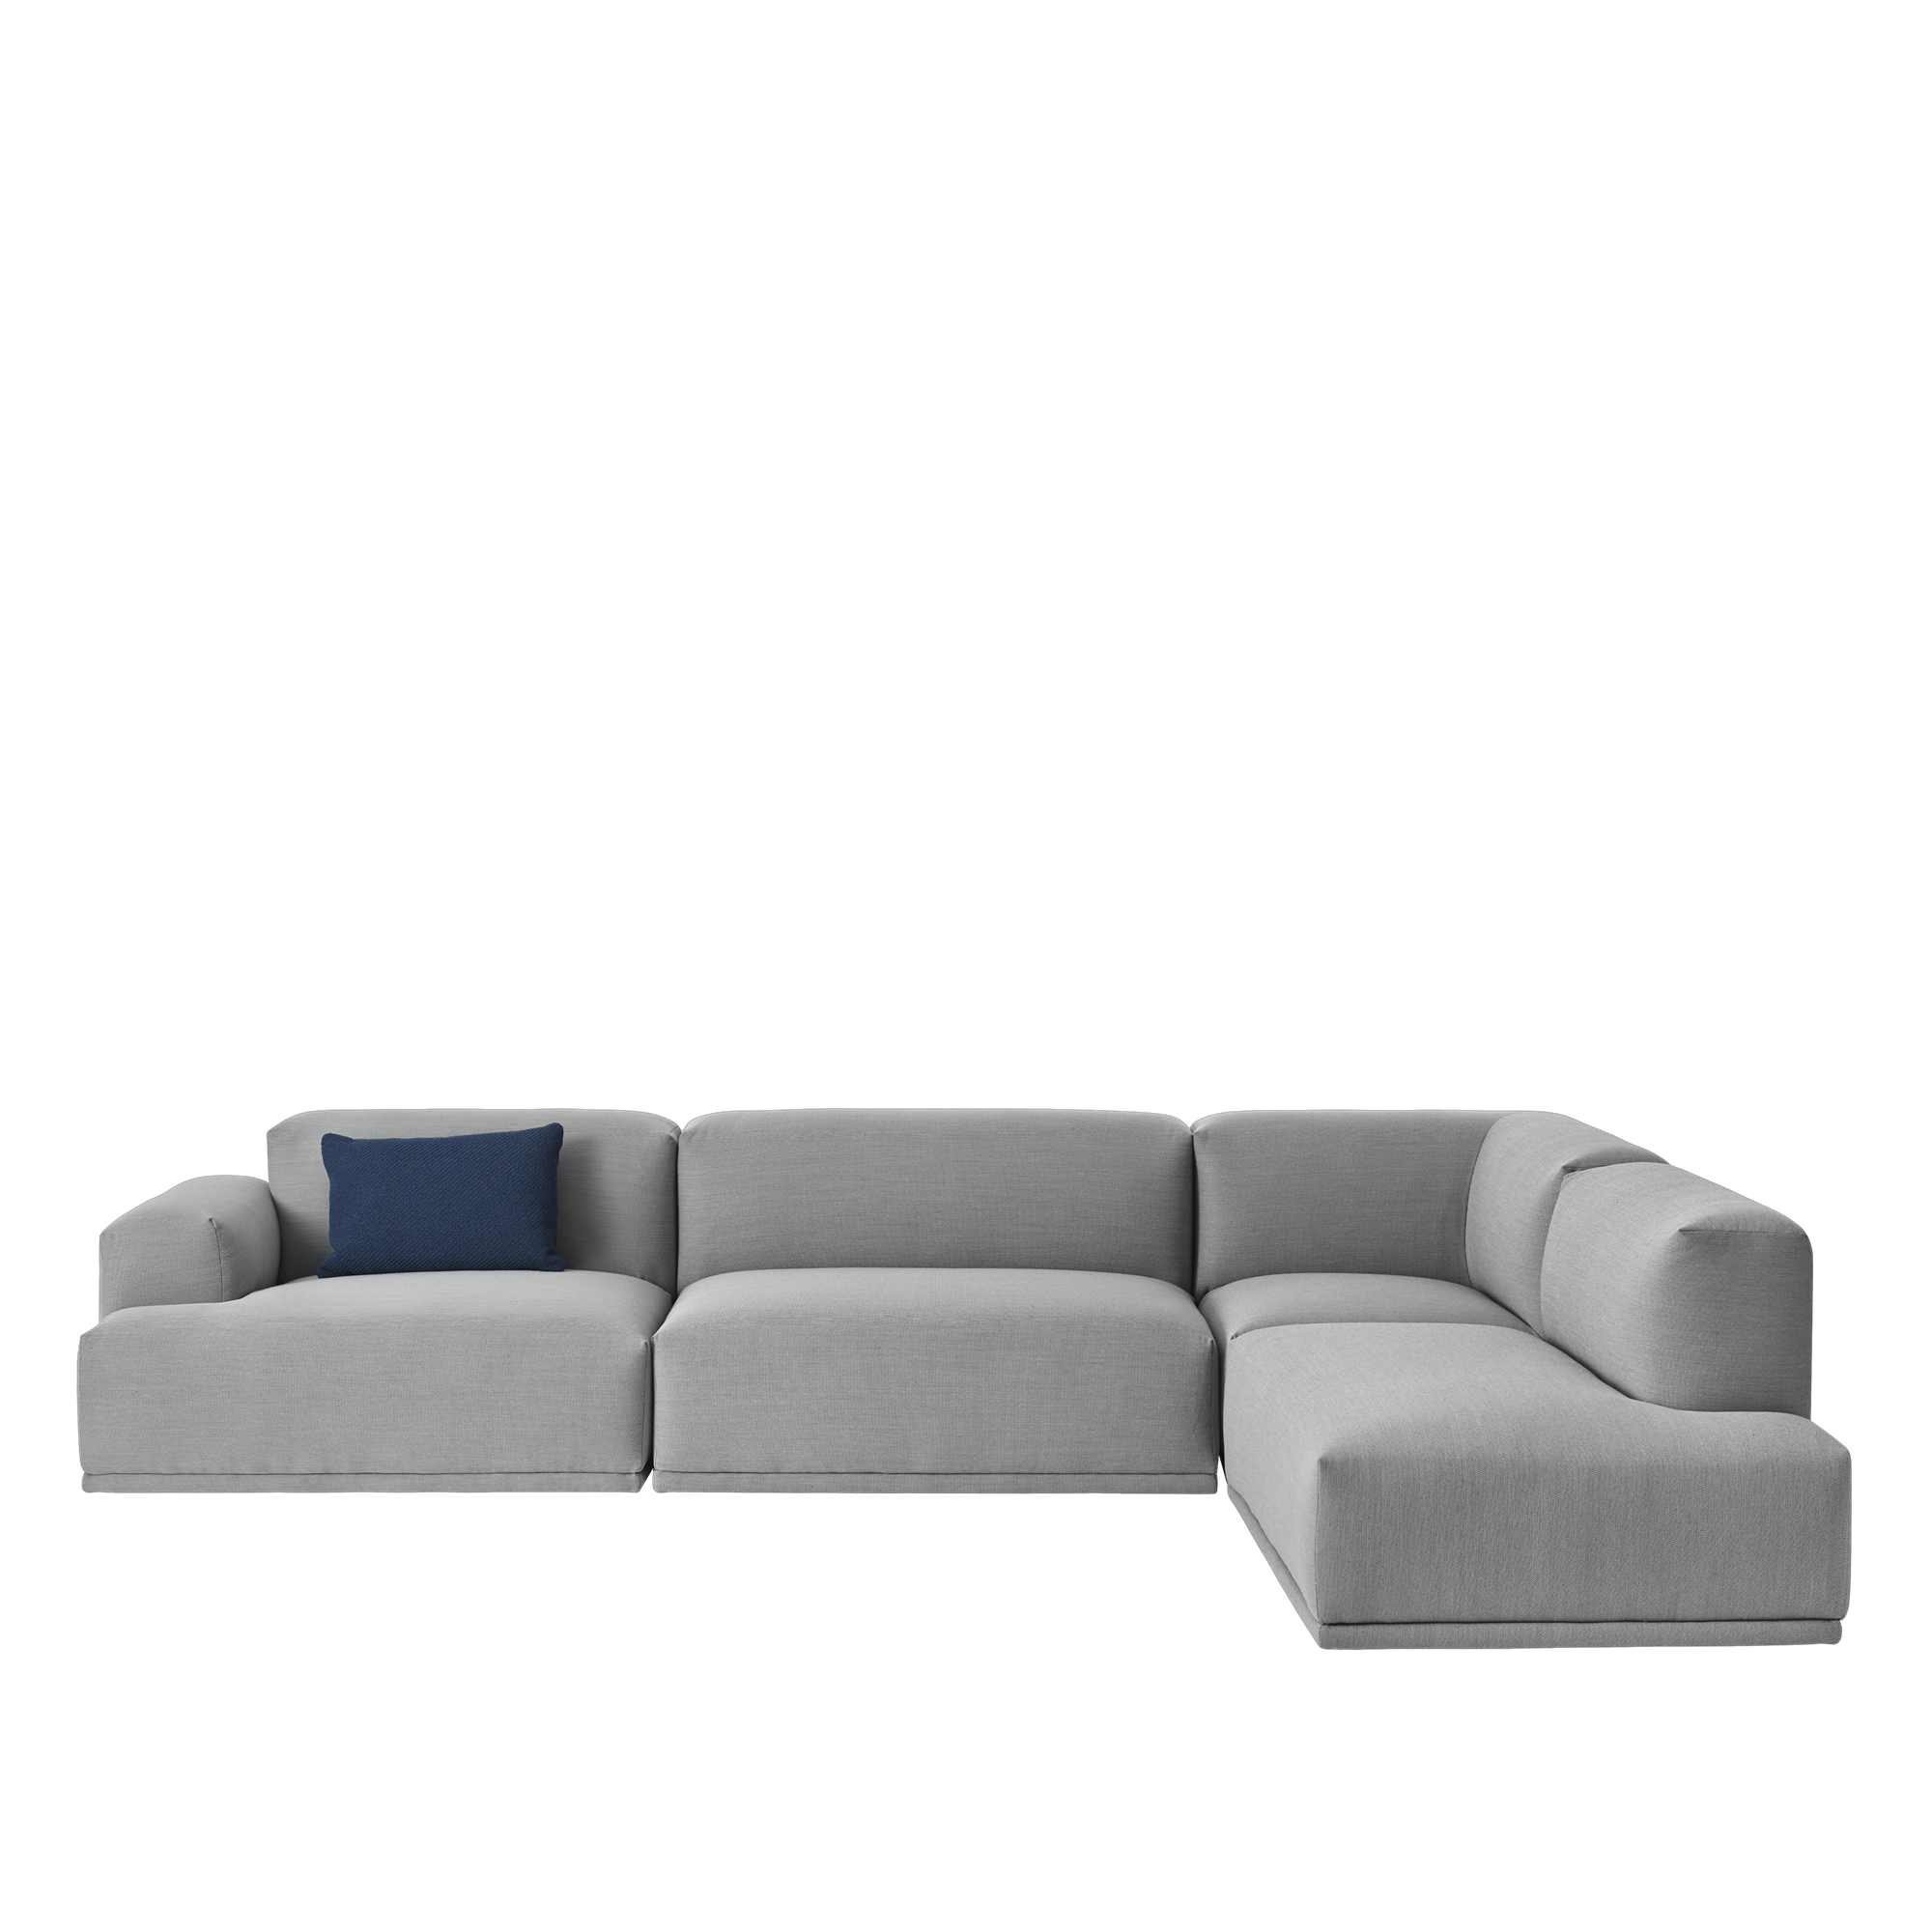 Full Size of Modulares Sofa Connect Modular System Customise The For Your Space Polyrattan Luxus Günstig Kaufen 2 5 Sitzer Hannover Xxl Grau 3 1 Relaxfunktion Kleines Big Sofa Modulares Sofa